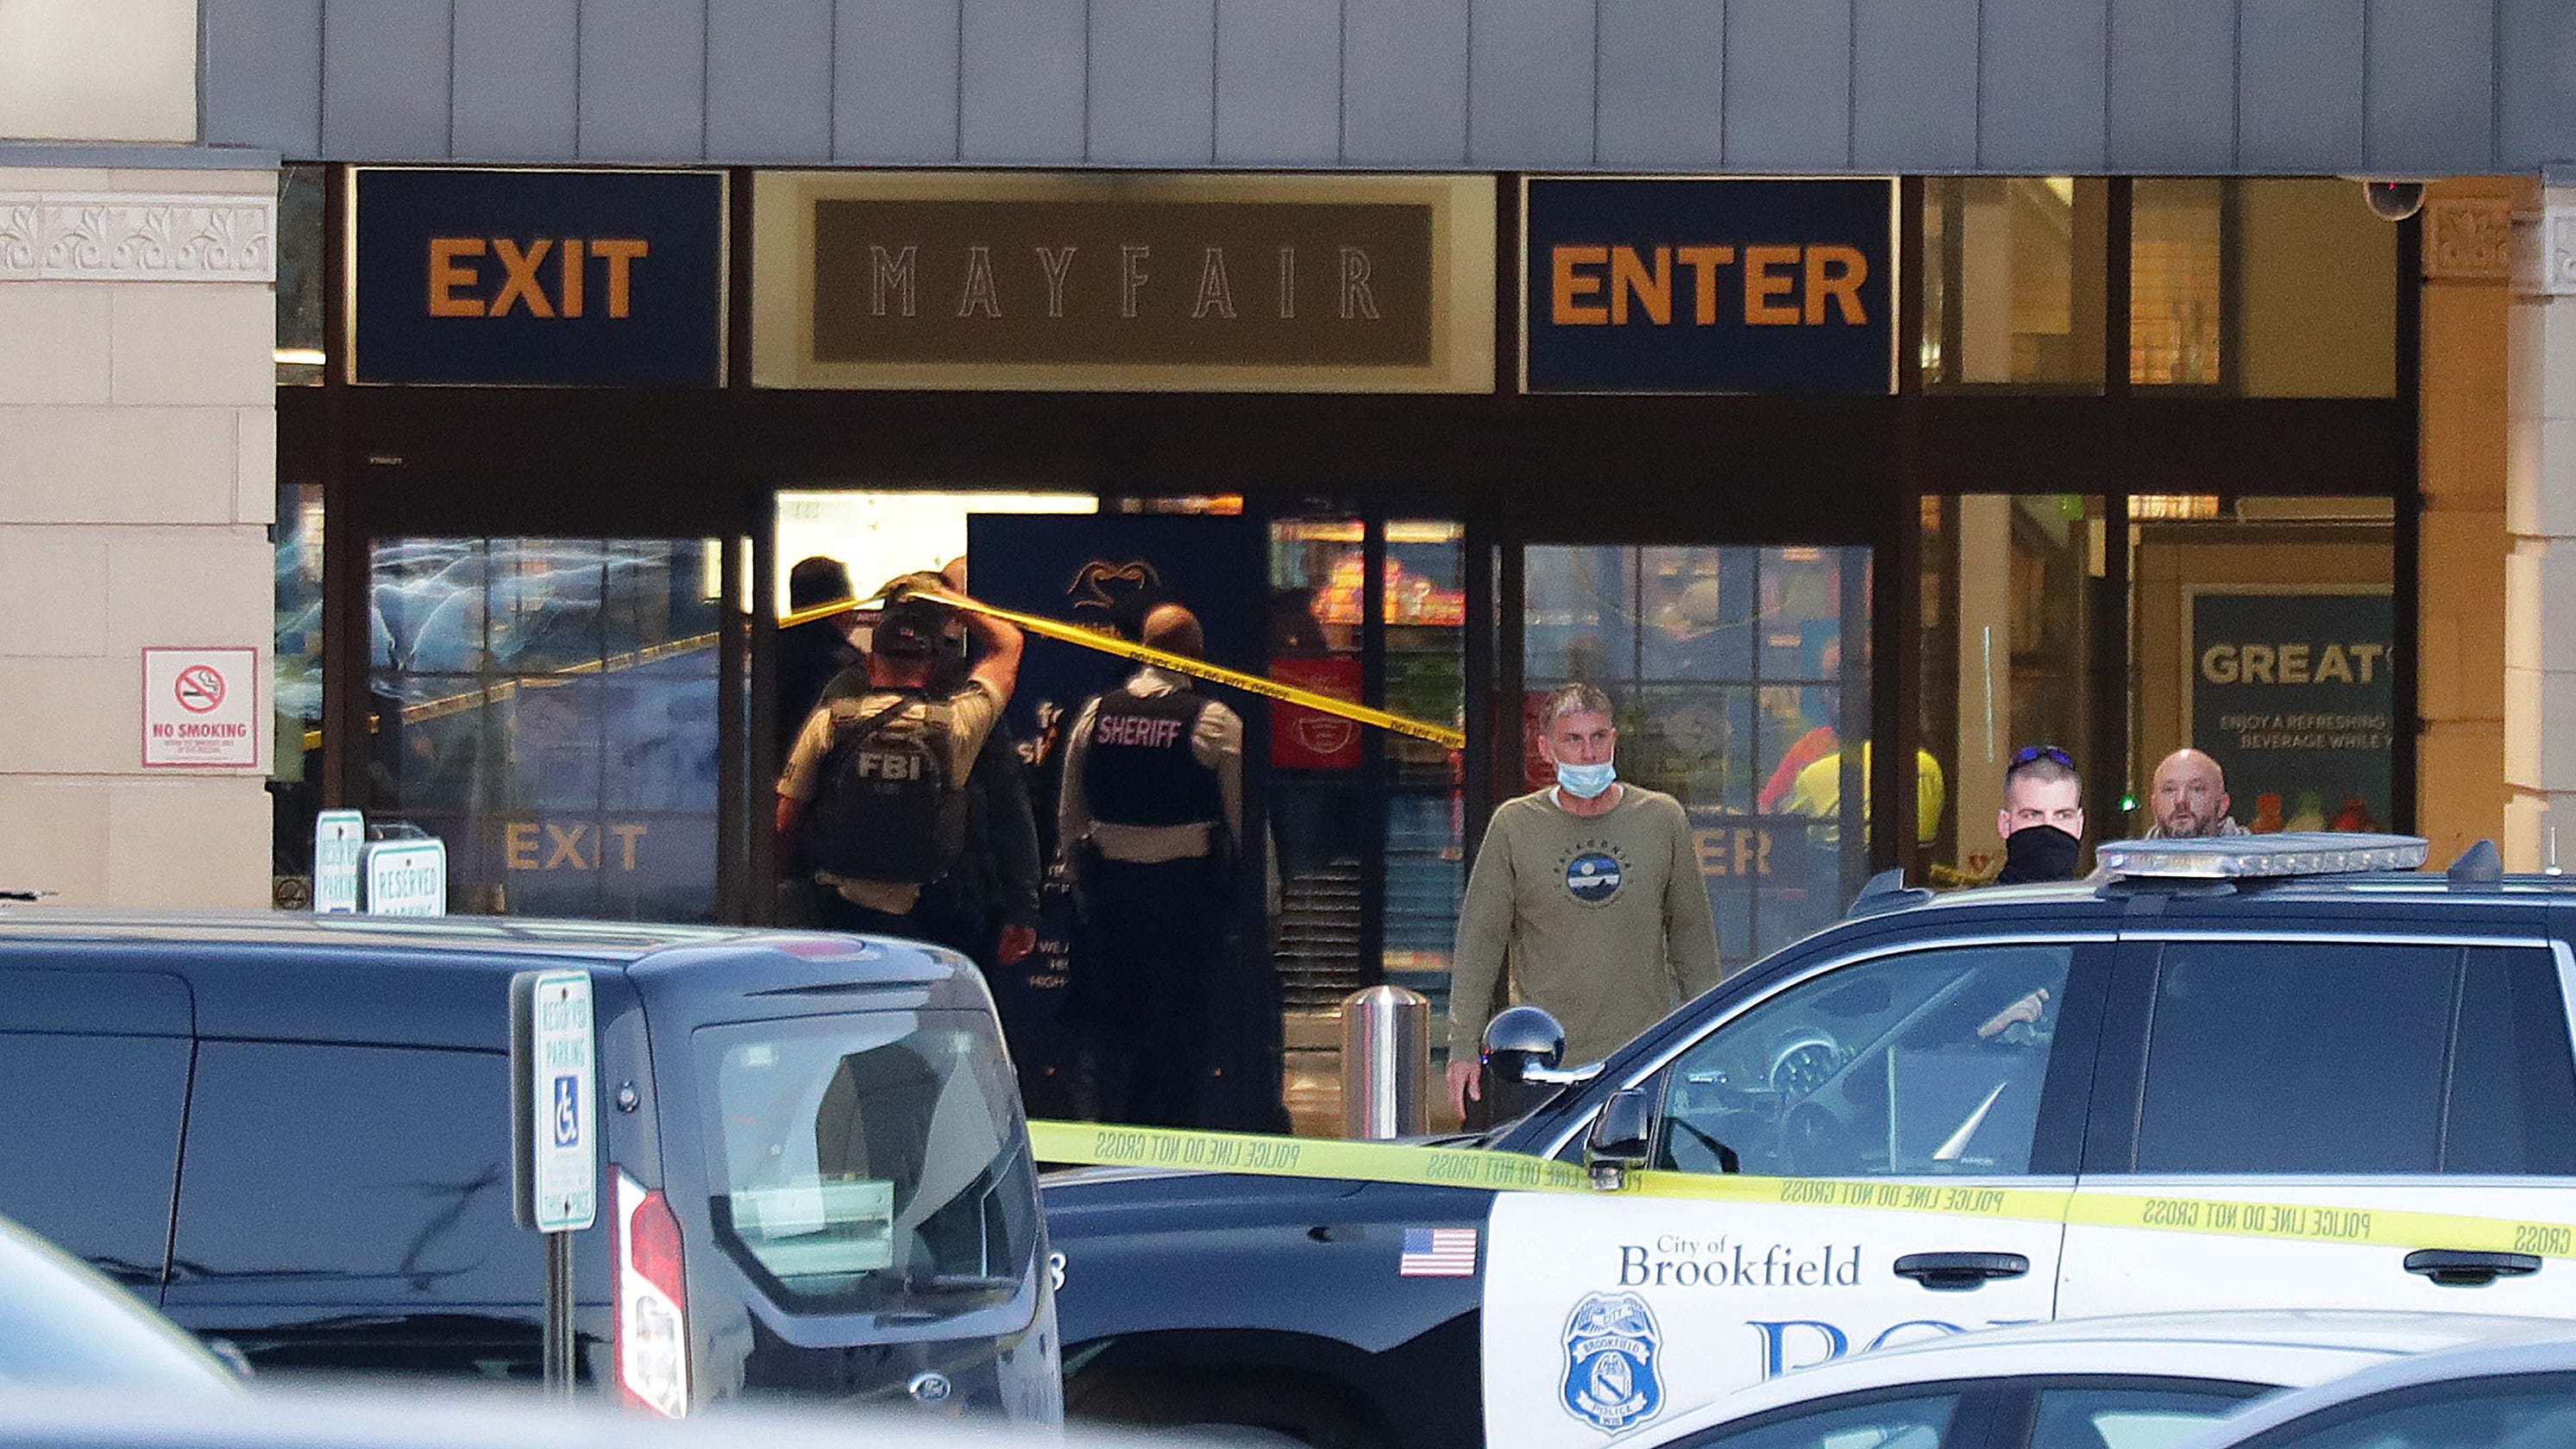 Wisconsin police arrest 15-year-old boy for Mayfair Mall shooting, say 'bullets started flying' during altercation